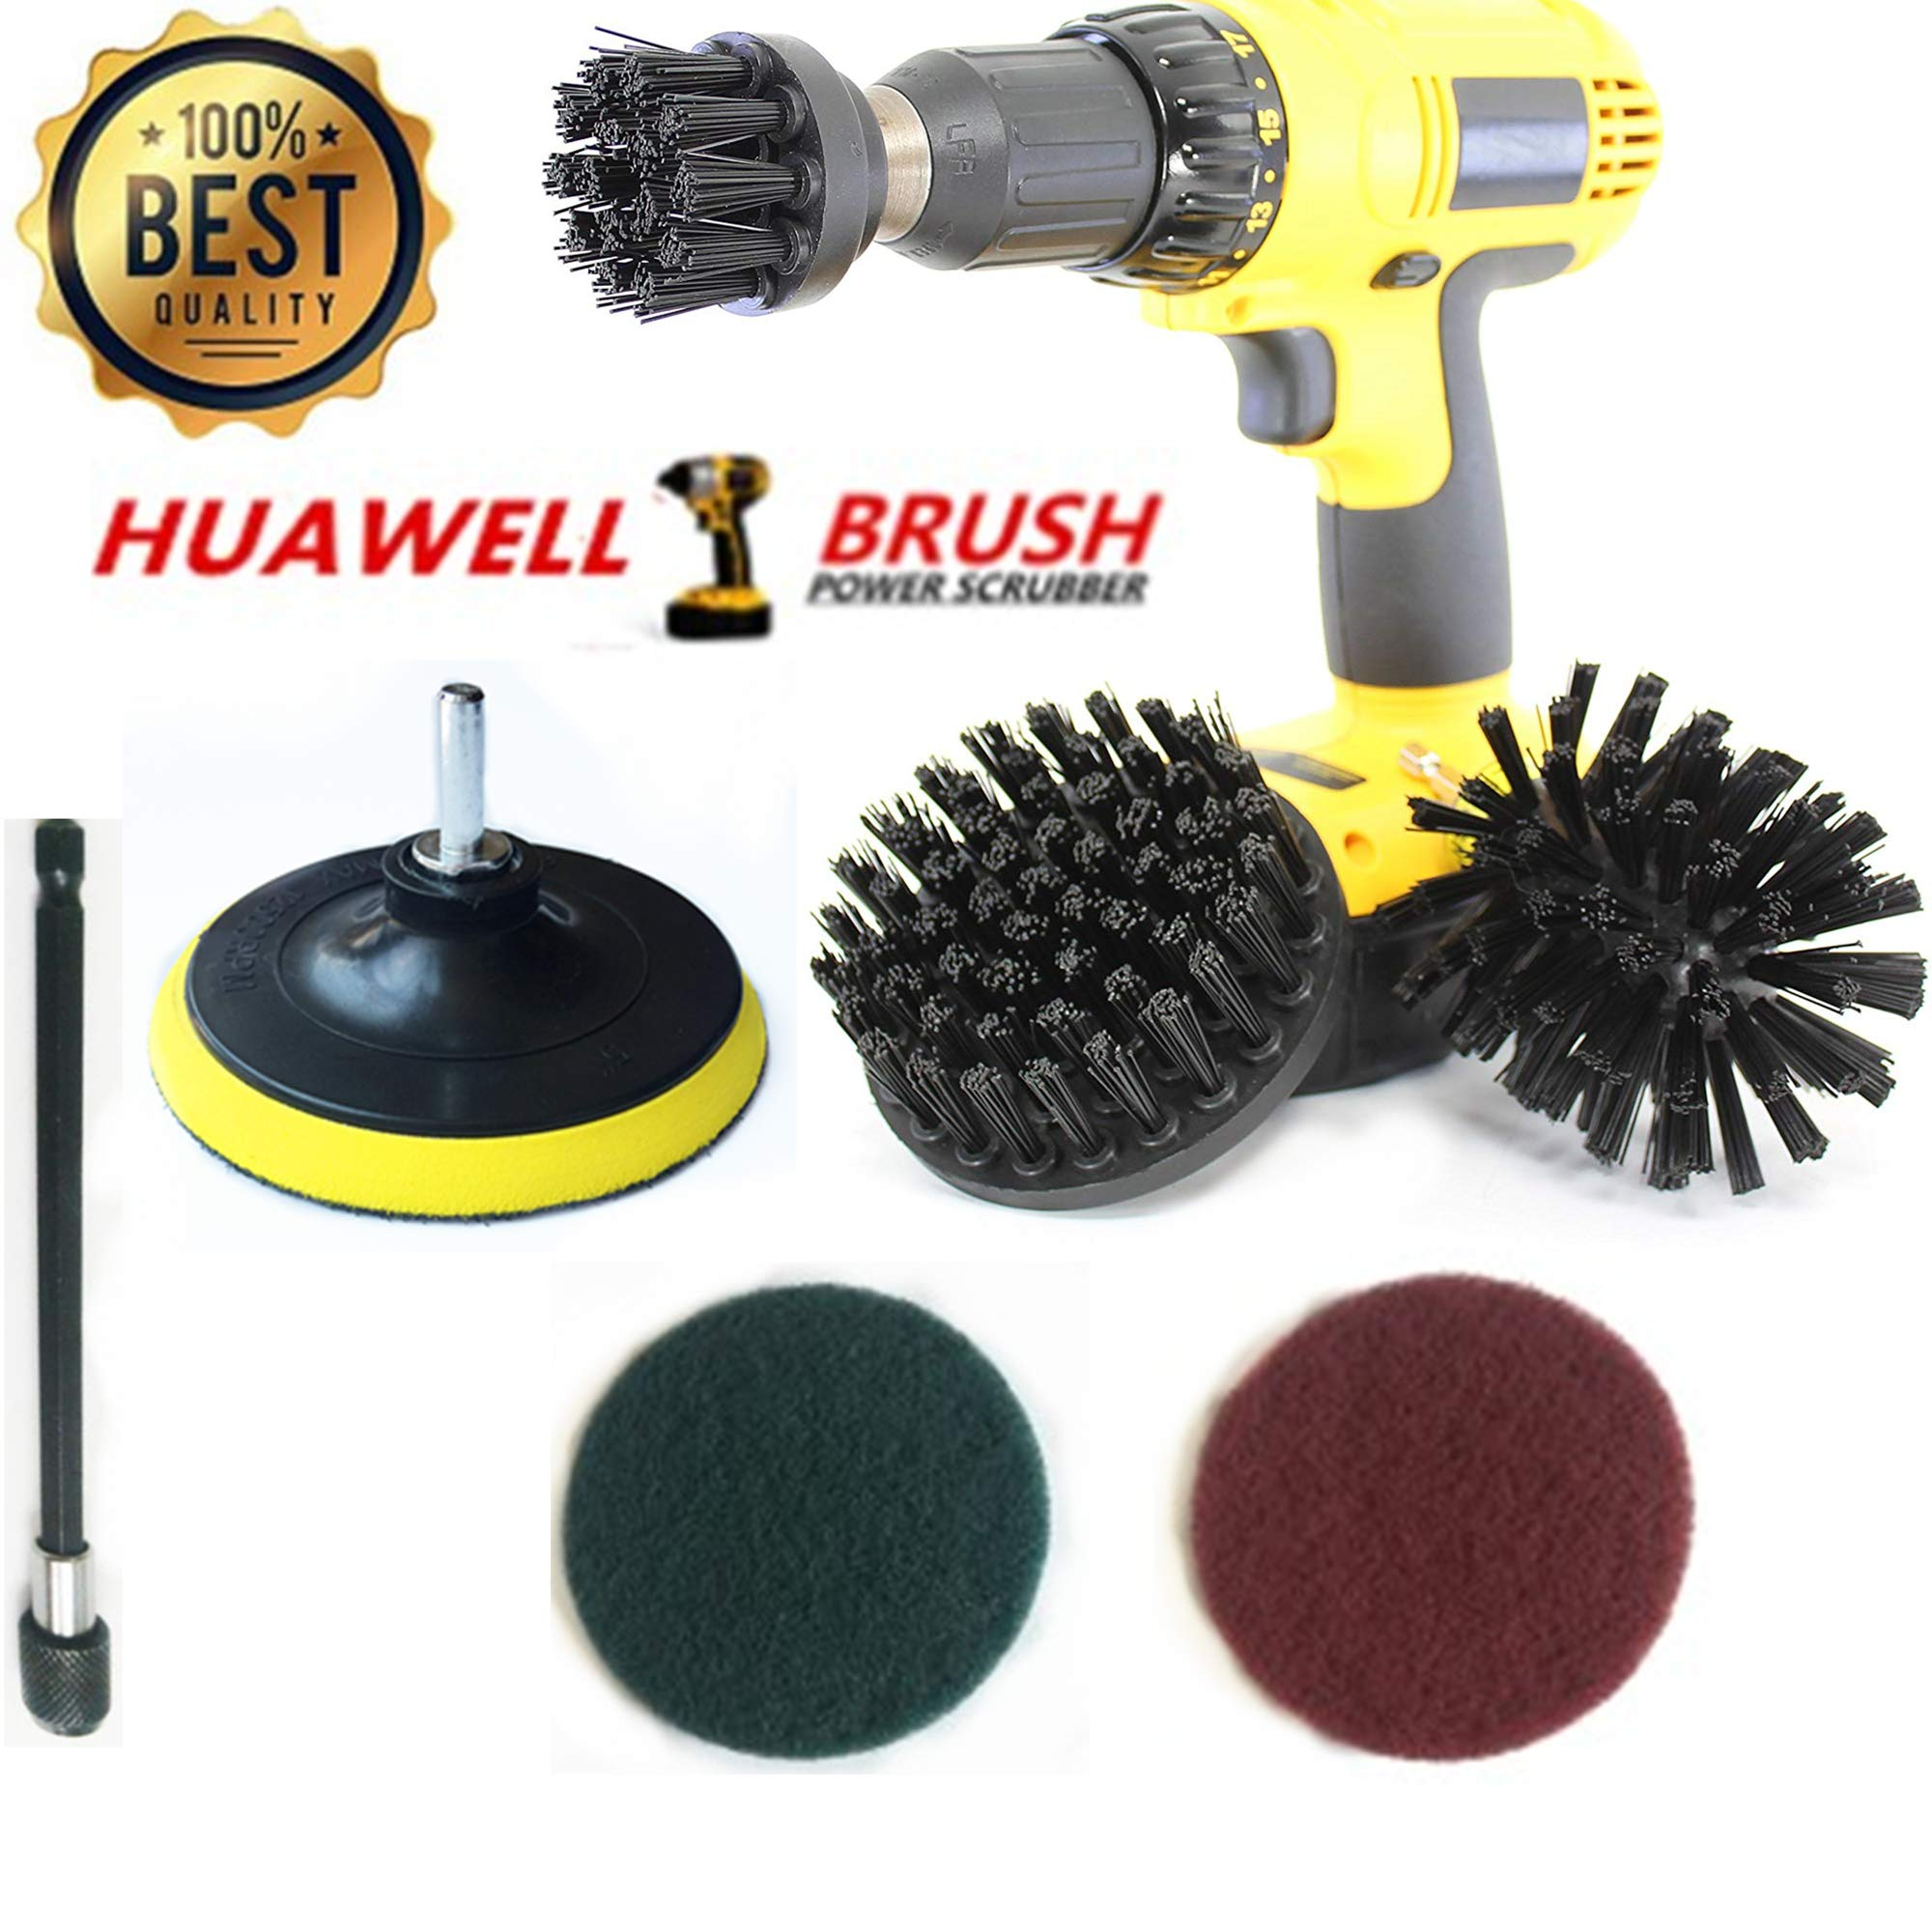 7 Piece Drill Scrub Kit Drill Brush Set with 6 Inch Extender - Industrial Brush - Baked on Food Remover - Electric Smoker - Smokers and Grills - Drill Brush - BBQ Cleaning Kit - Rust Remover